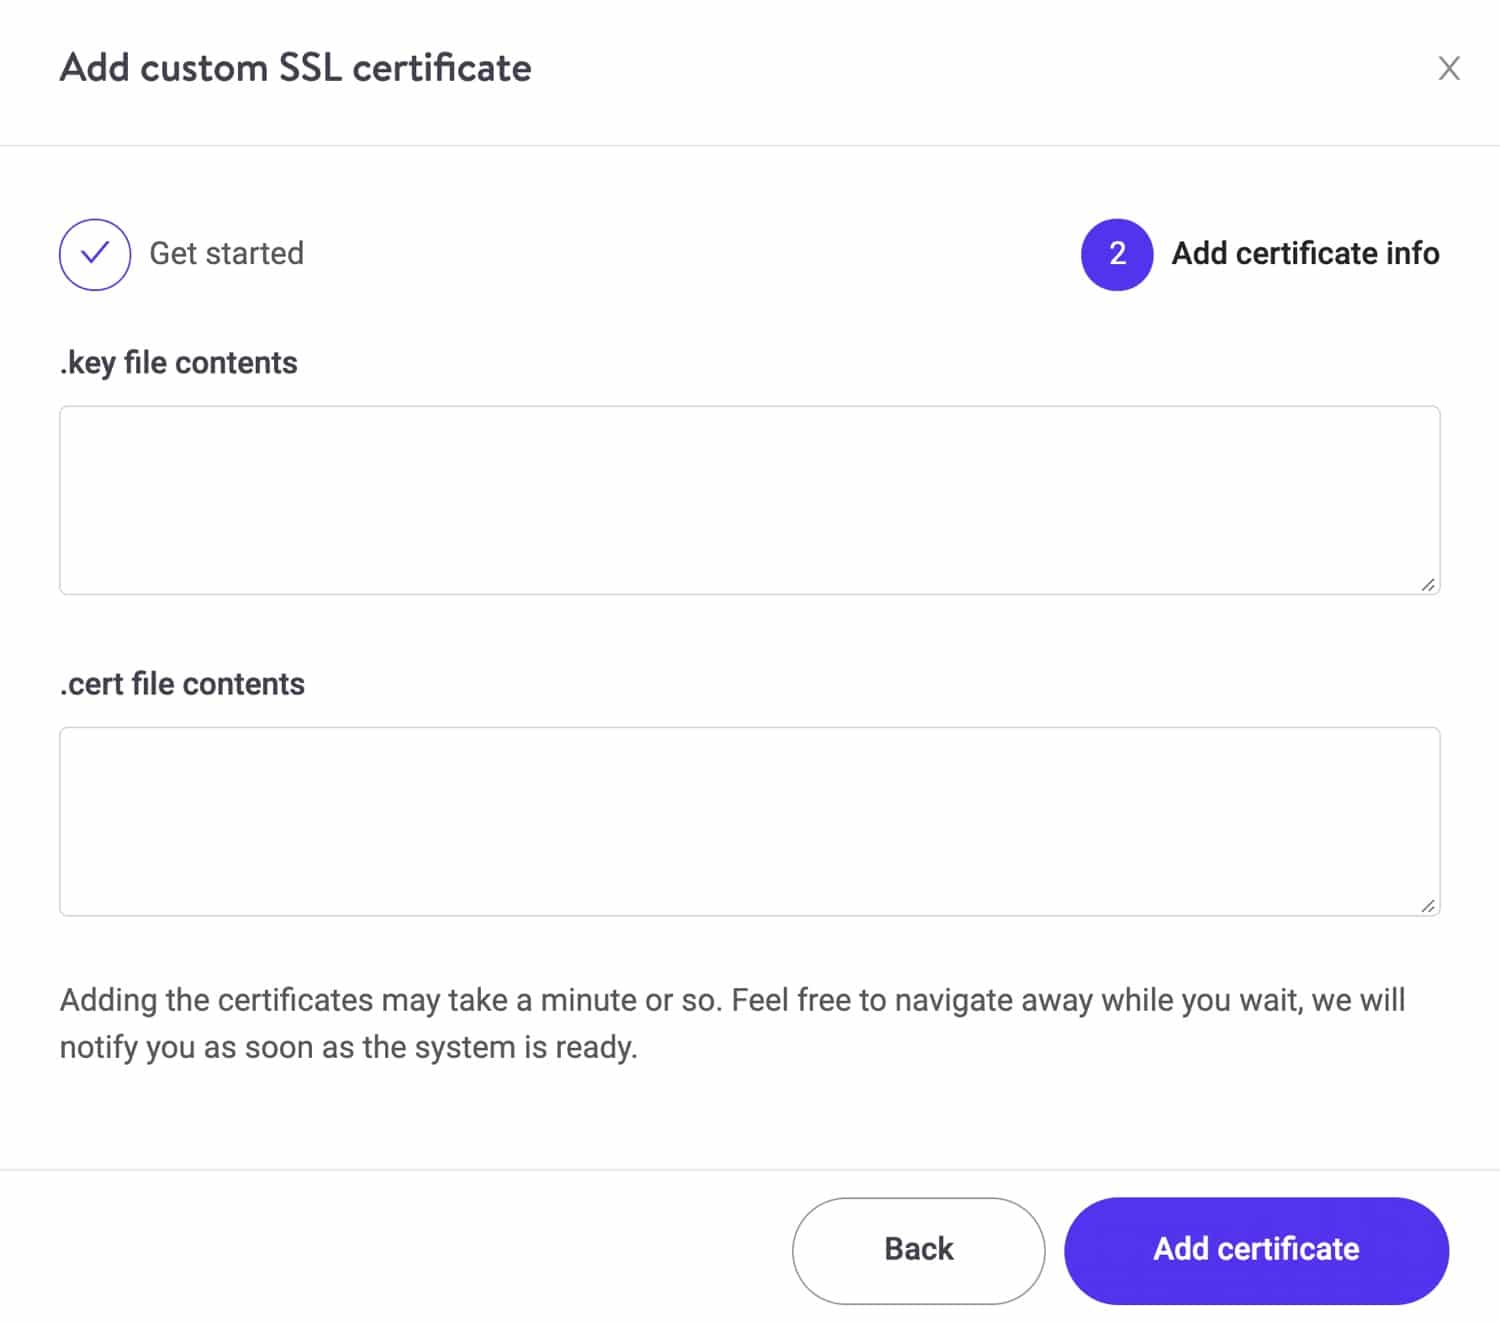 Apply custom SSL certificate.